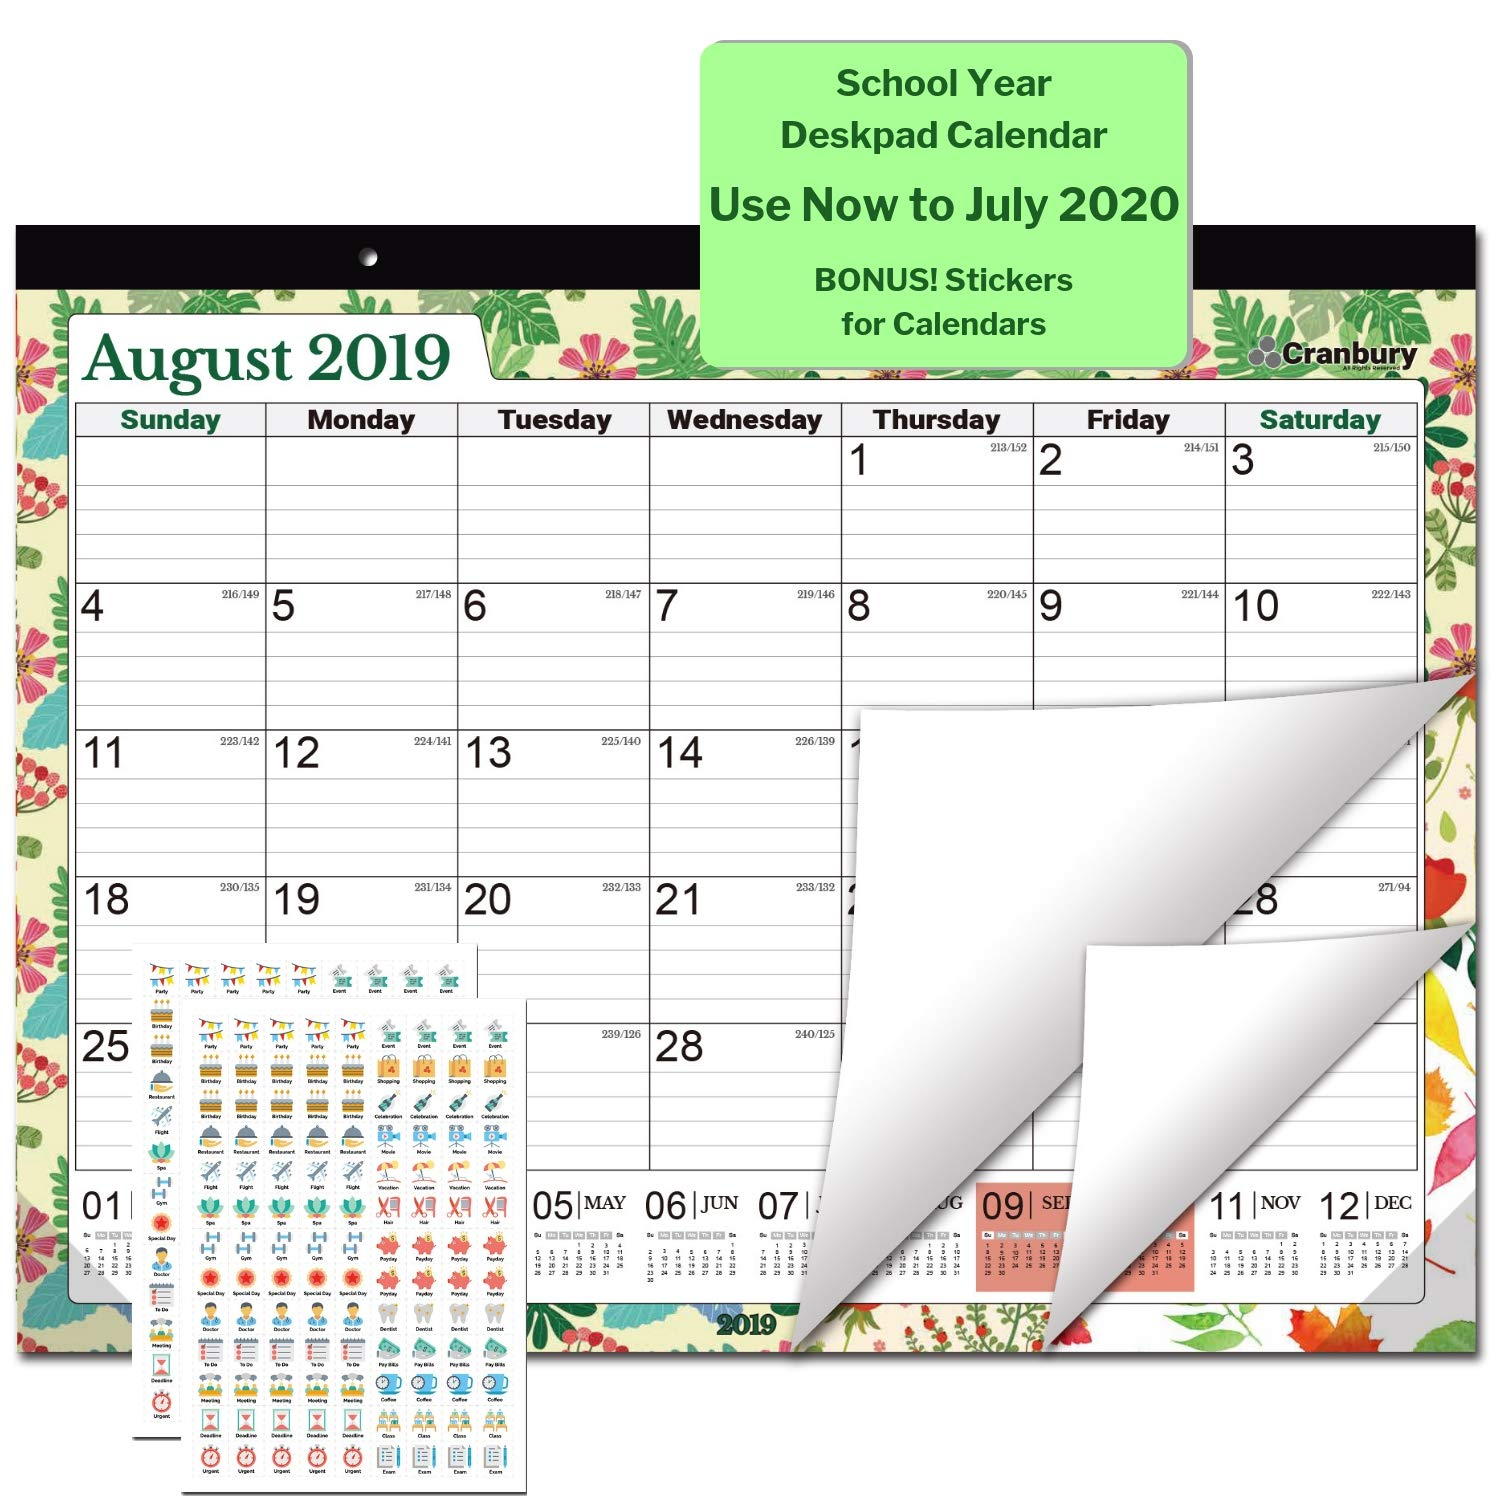 Large Desk Calendar 2019-2020, 17.75 x 13.75 (Seasons) Use Through July 2020, Desktop Academic Calendar 2019-2020, Deskpad Calendars for School, Home or Office, with Stickers for Calendars by CRANBURY